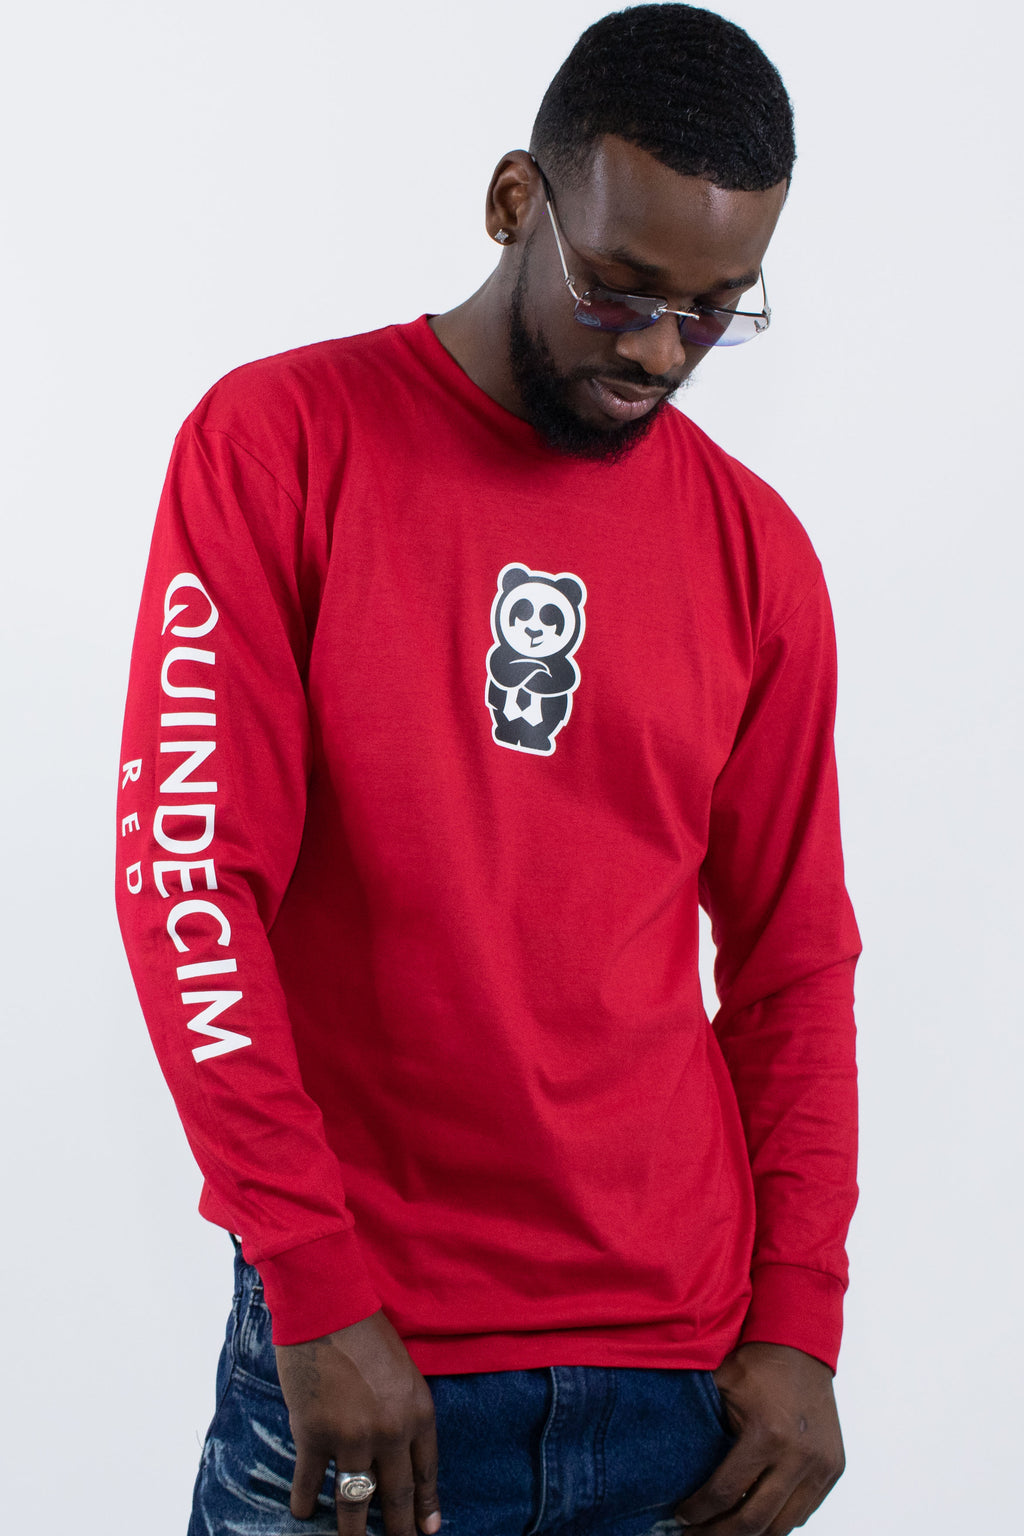 Long Sleeve Panda (Red) - Quindecim Red